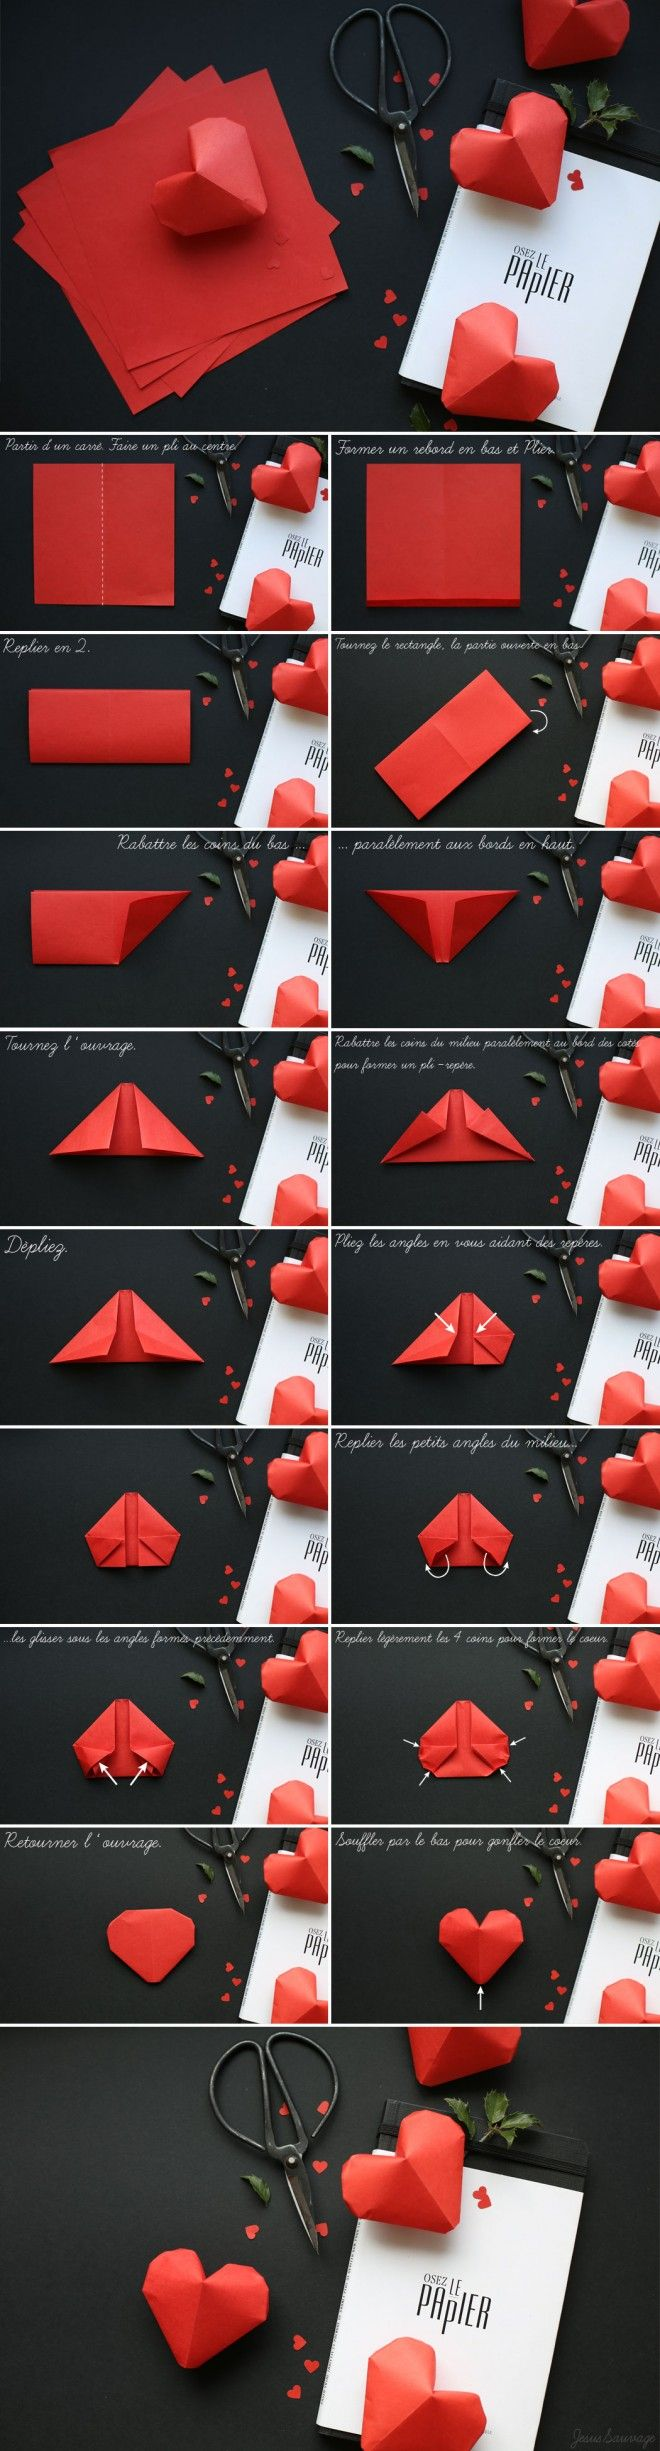 How To Fold Lovely Origami Hearts How To Instructions How To Instructions Paper Crafts Diy Valentines Diy Crafts